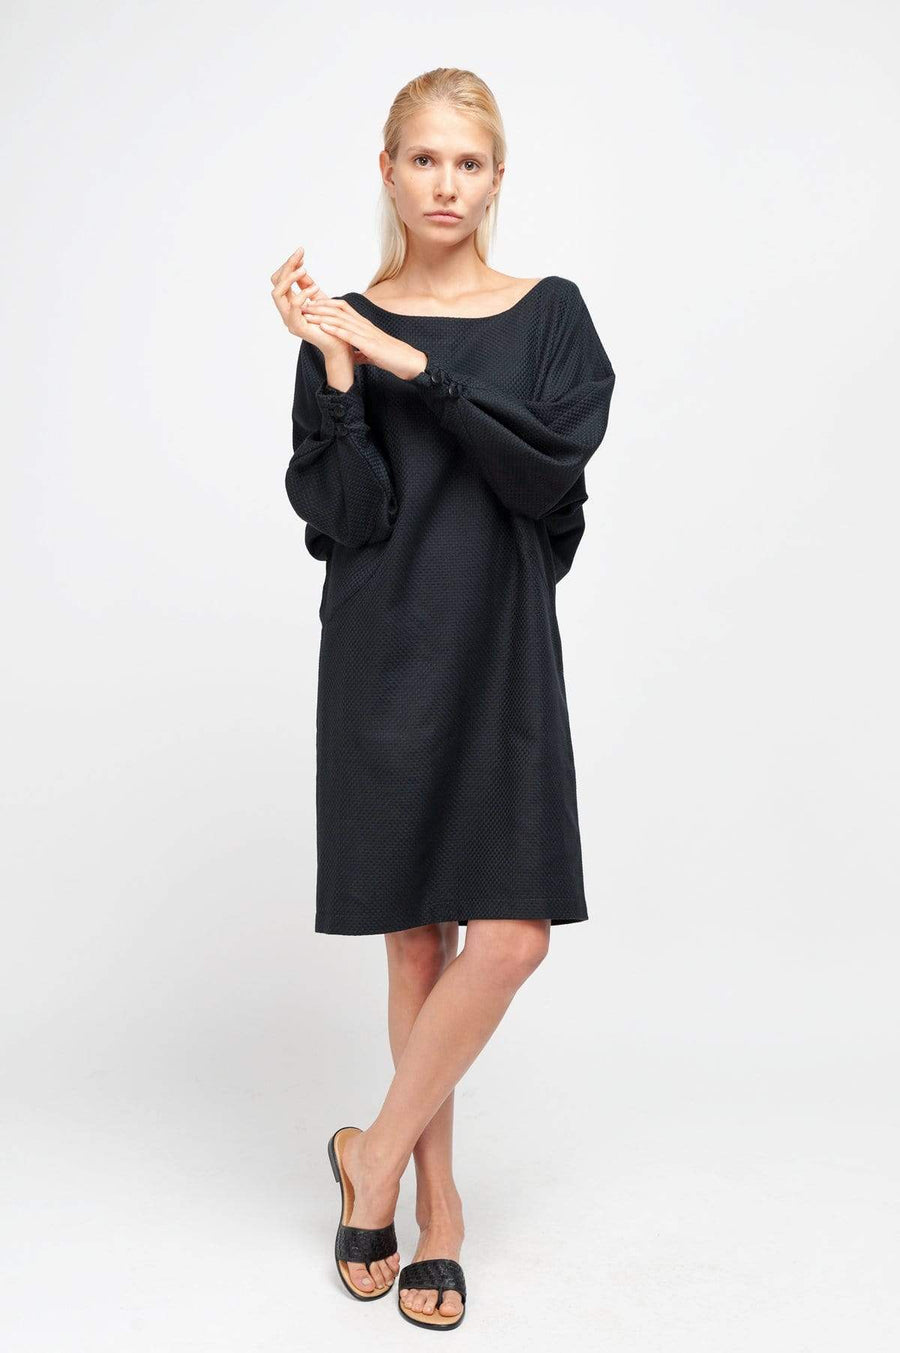 SHIPSHEIP dress Meryl Dress. Organic Cotton. sustainable fashion ethical fashion